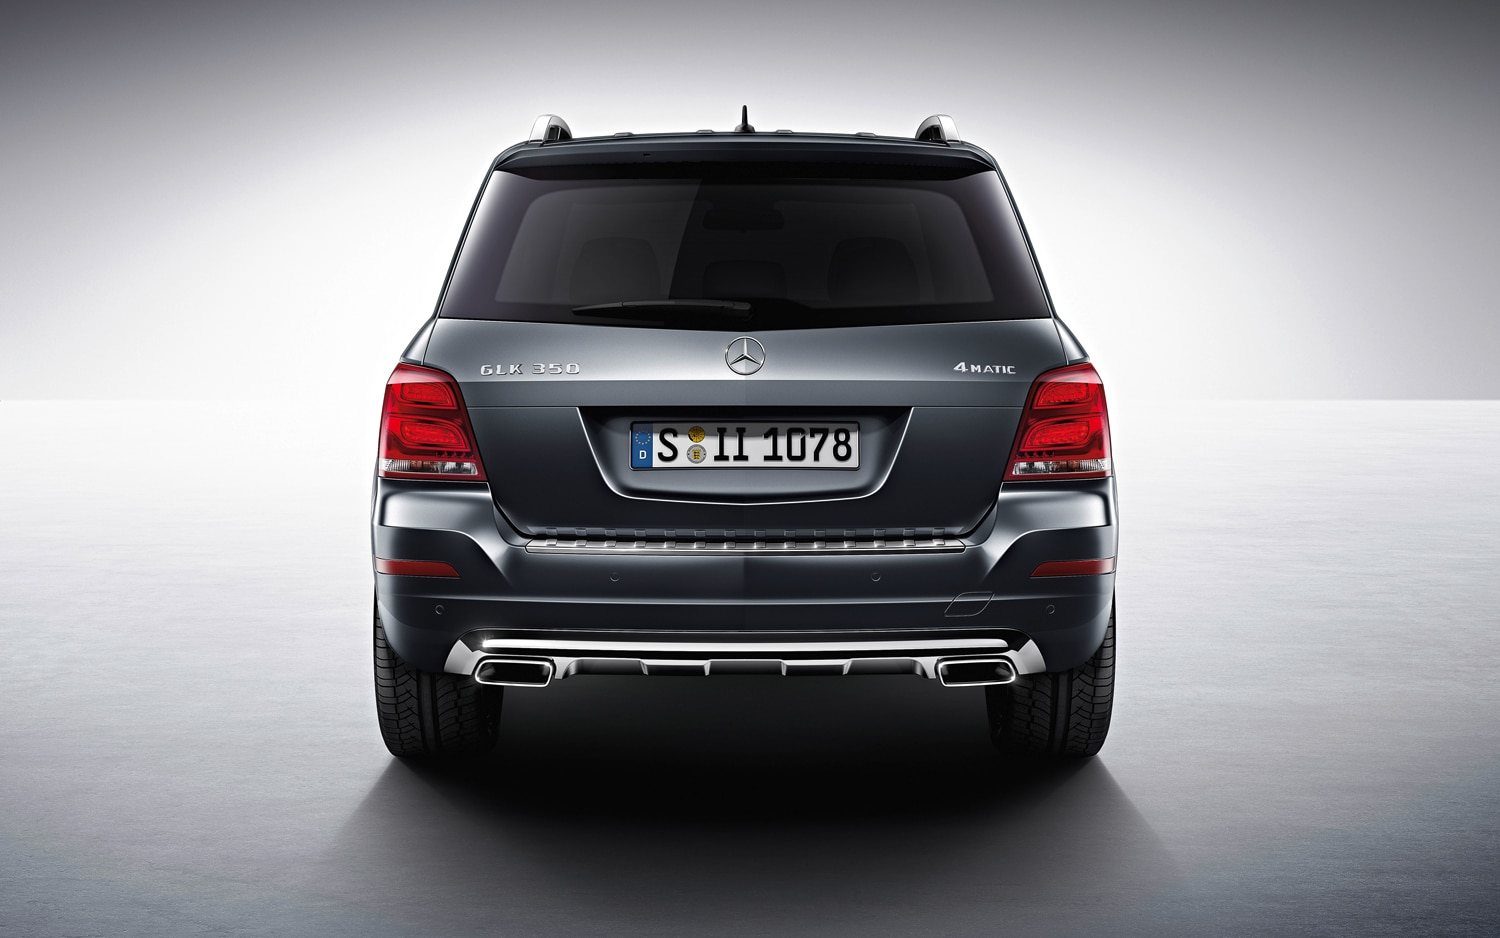 Mercedes benz glk class 2013 pictures information amp specs - One